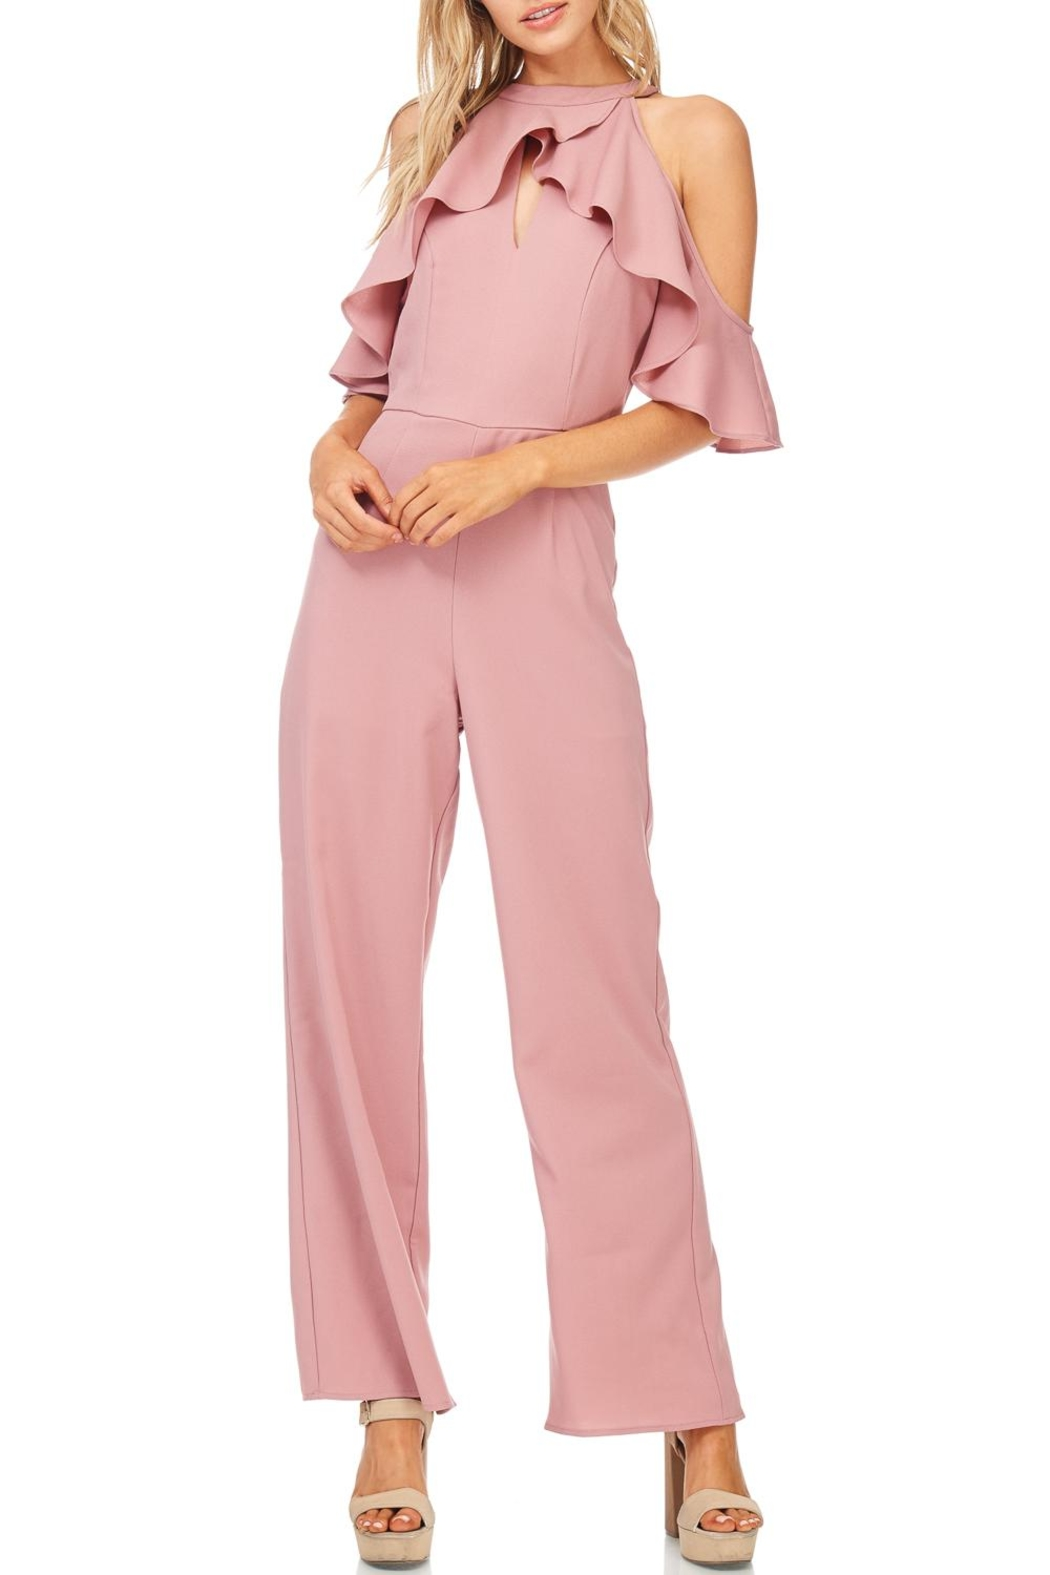 d10b662b1f66 She + Sky Dusty Rose Jumpsuit from Wisconsin by Apricot Lane ...